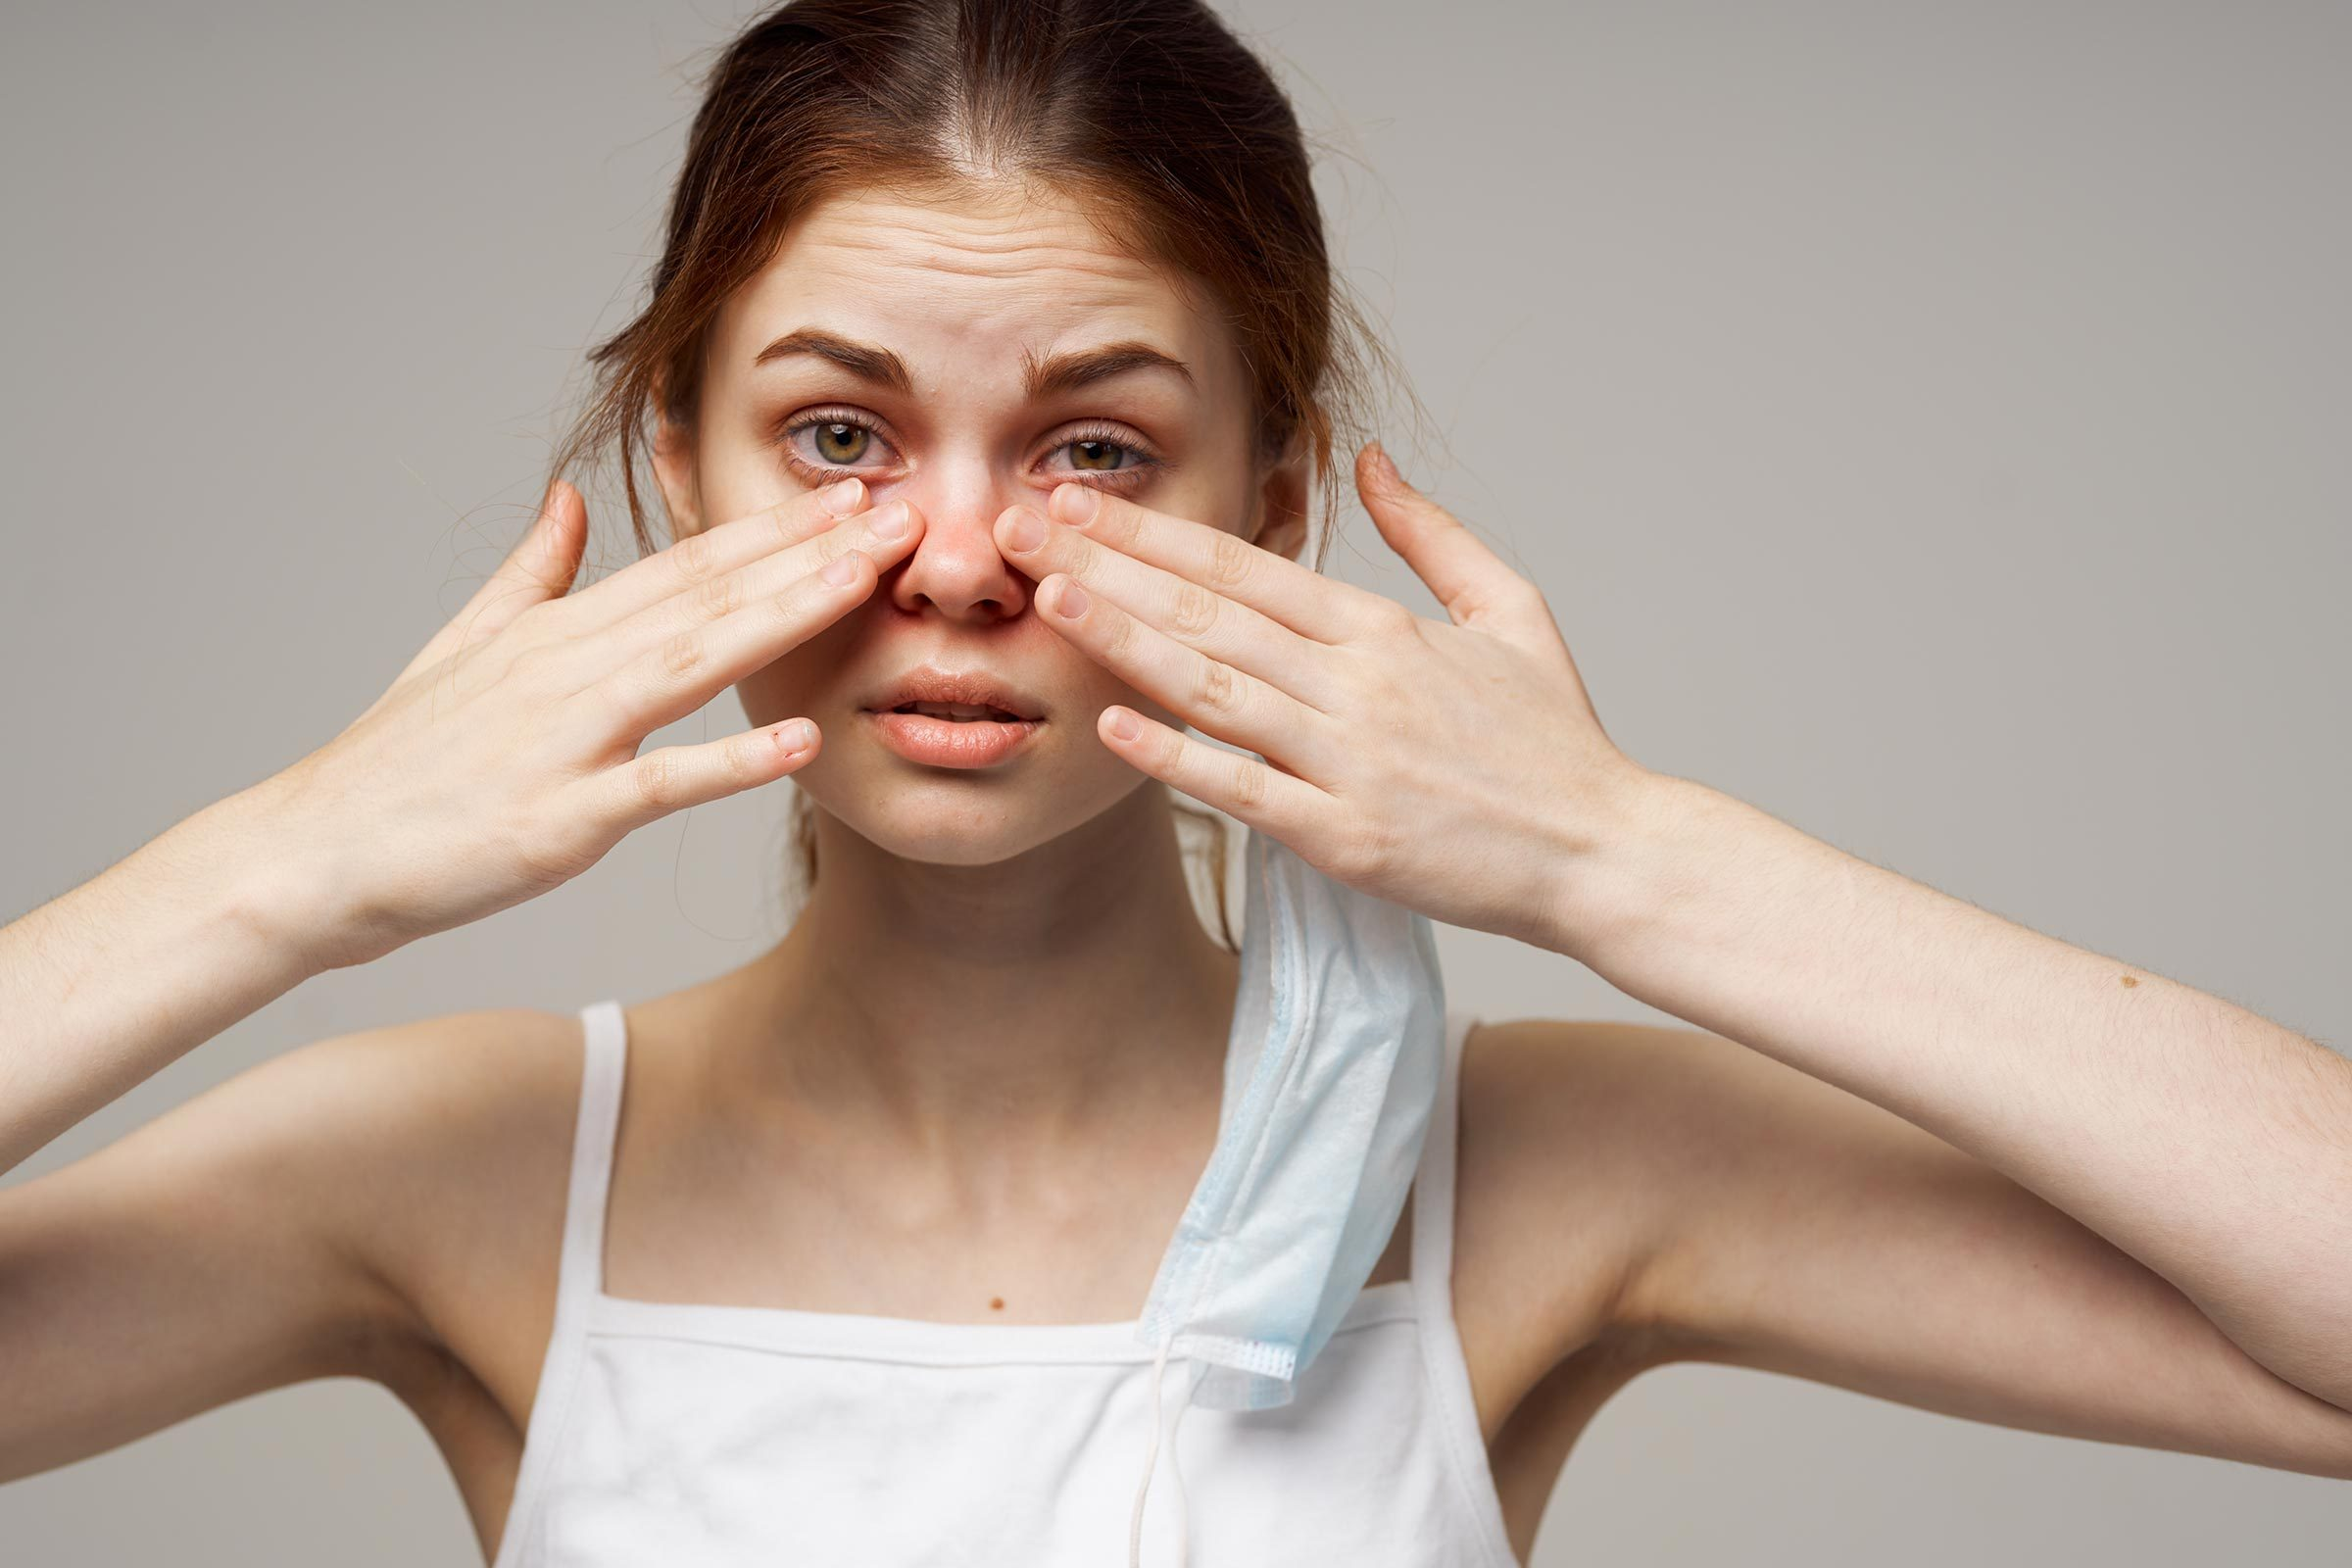 Eye Boogers: What They Say About Your Health | The Healthy